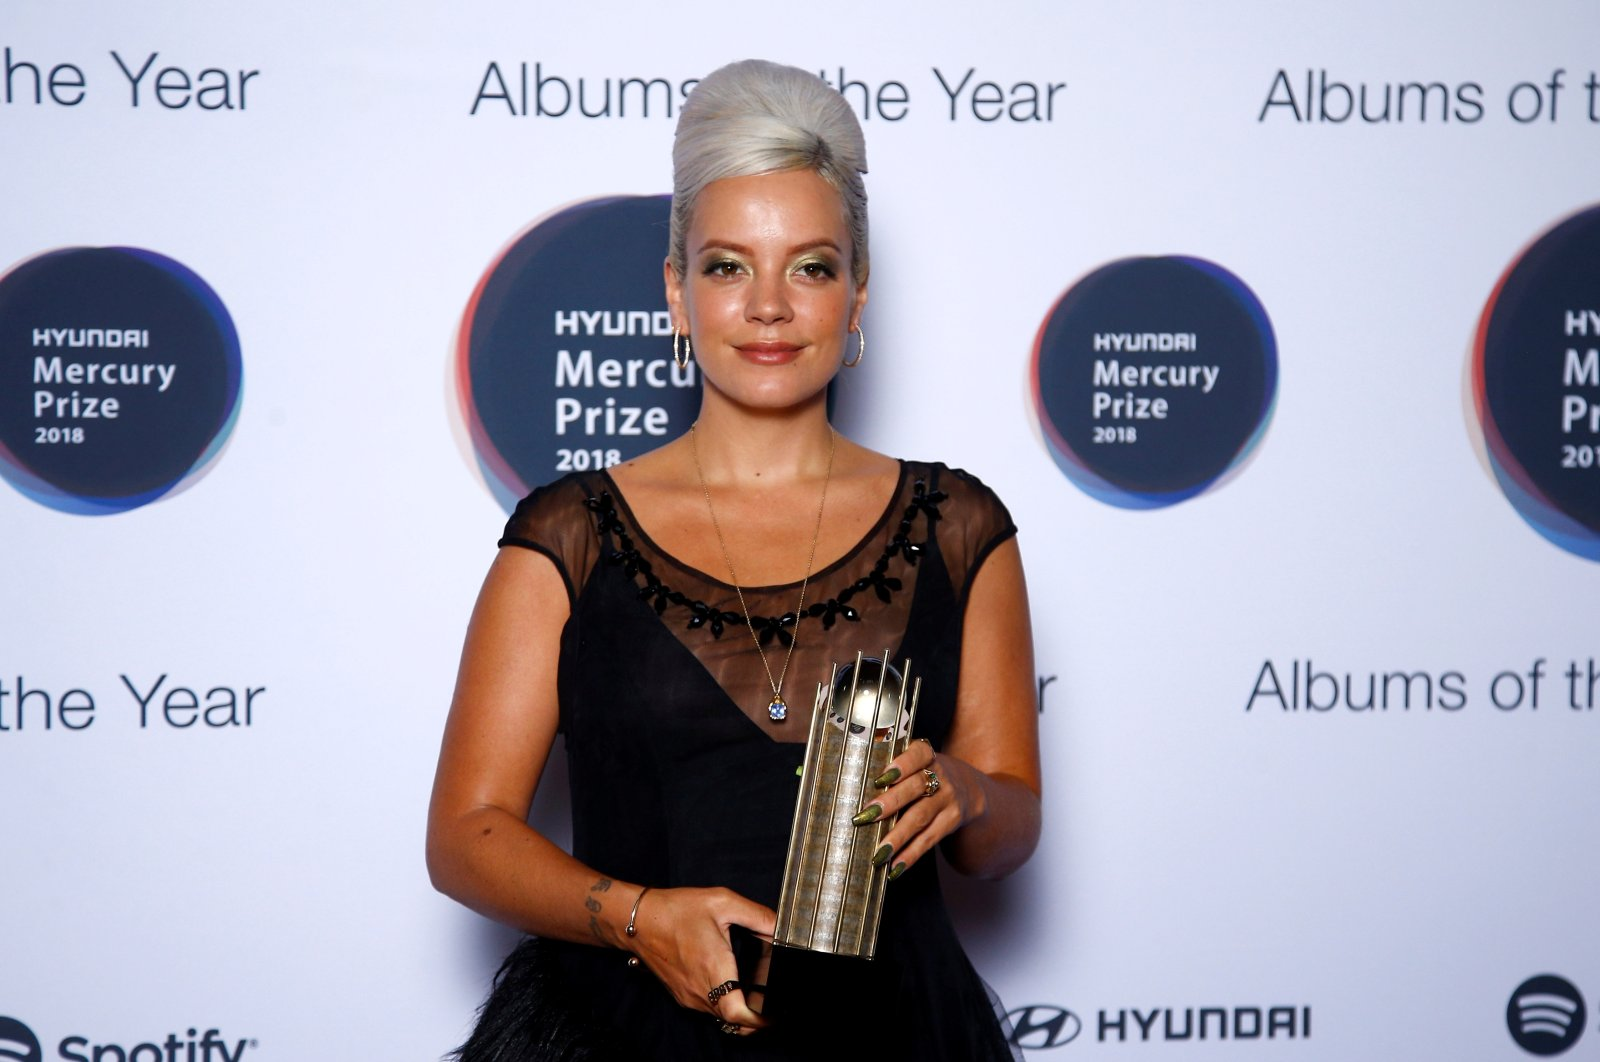 """Lily Allen, whose album """"No Shame"""" was nominated for the Mercury Prize 2018, poses for a photograph ahead of the ceremony at the Hammersmith Apollo in London, Britain, Sept. 20, 2018. (REUTERS Photo)"""